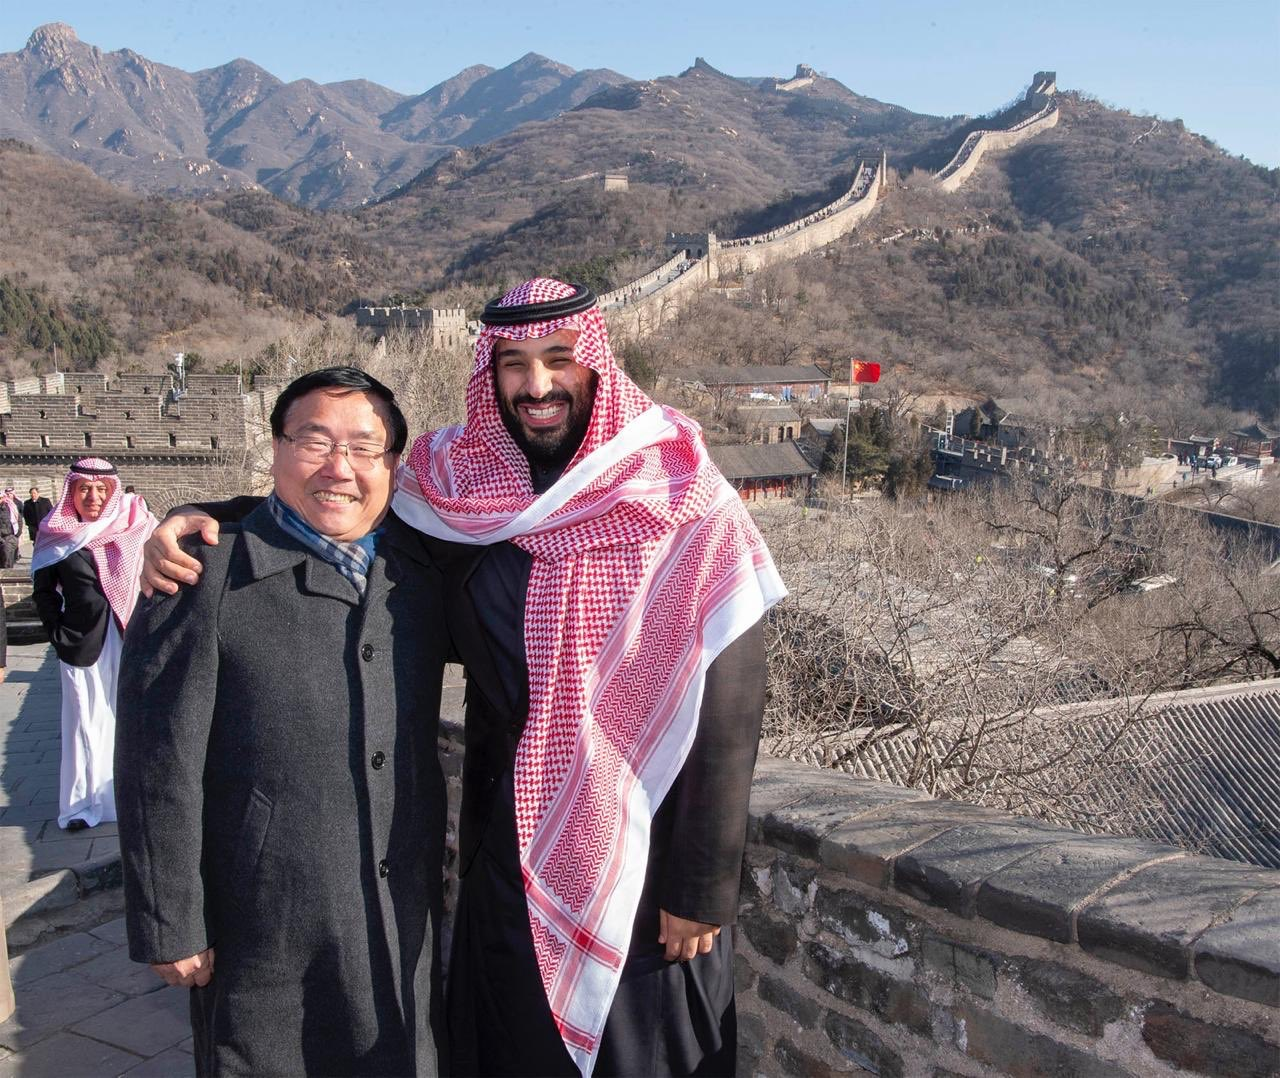 MBS GREAT WALL